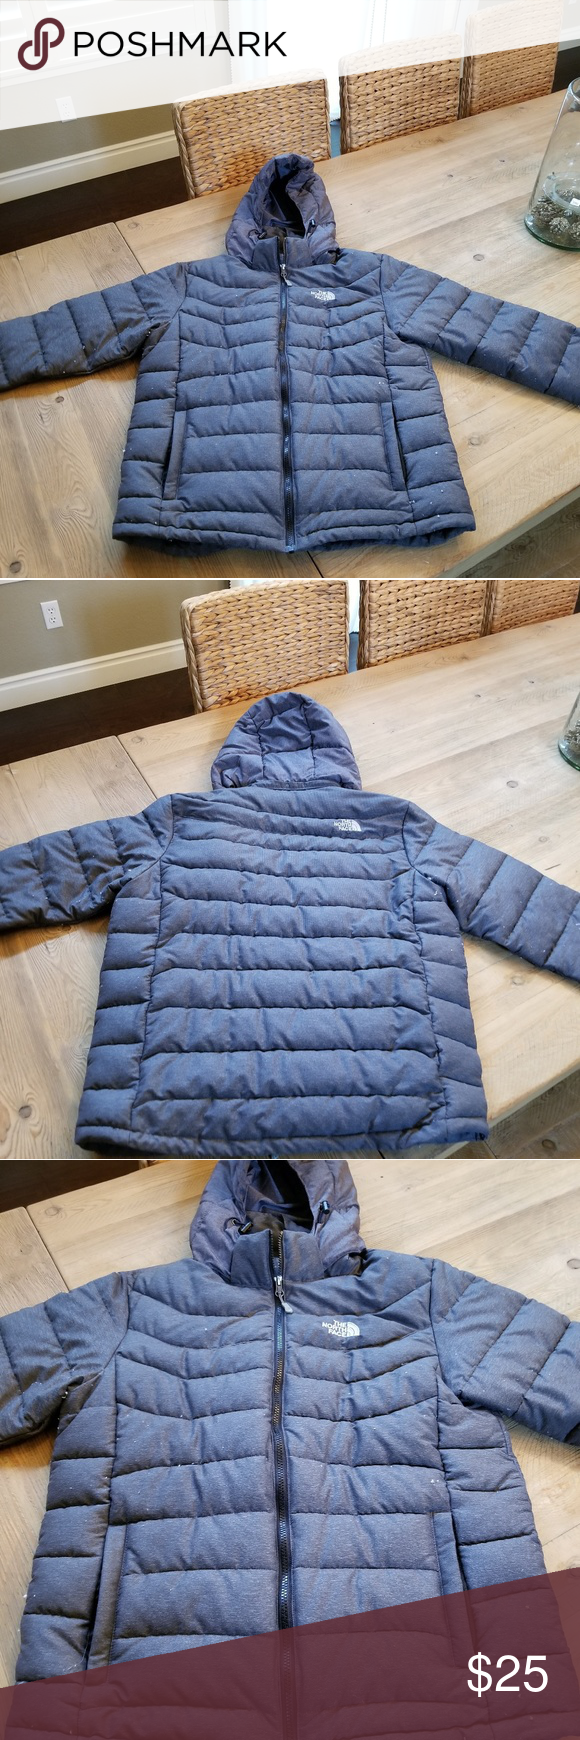 Fake North Face Puffer Hoodie Jacket North Face Puffer Hoodie Jacket Jackets [ 1740 x 580 Pixel ]